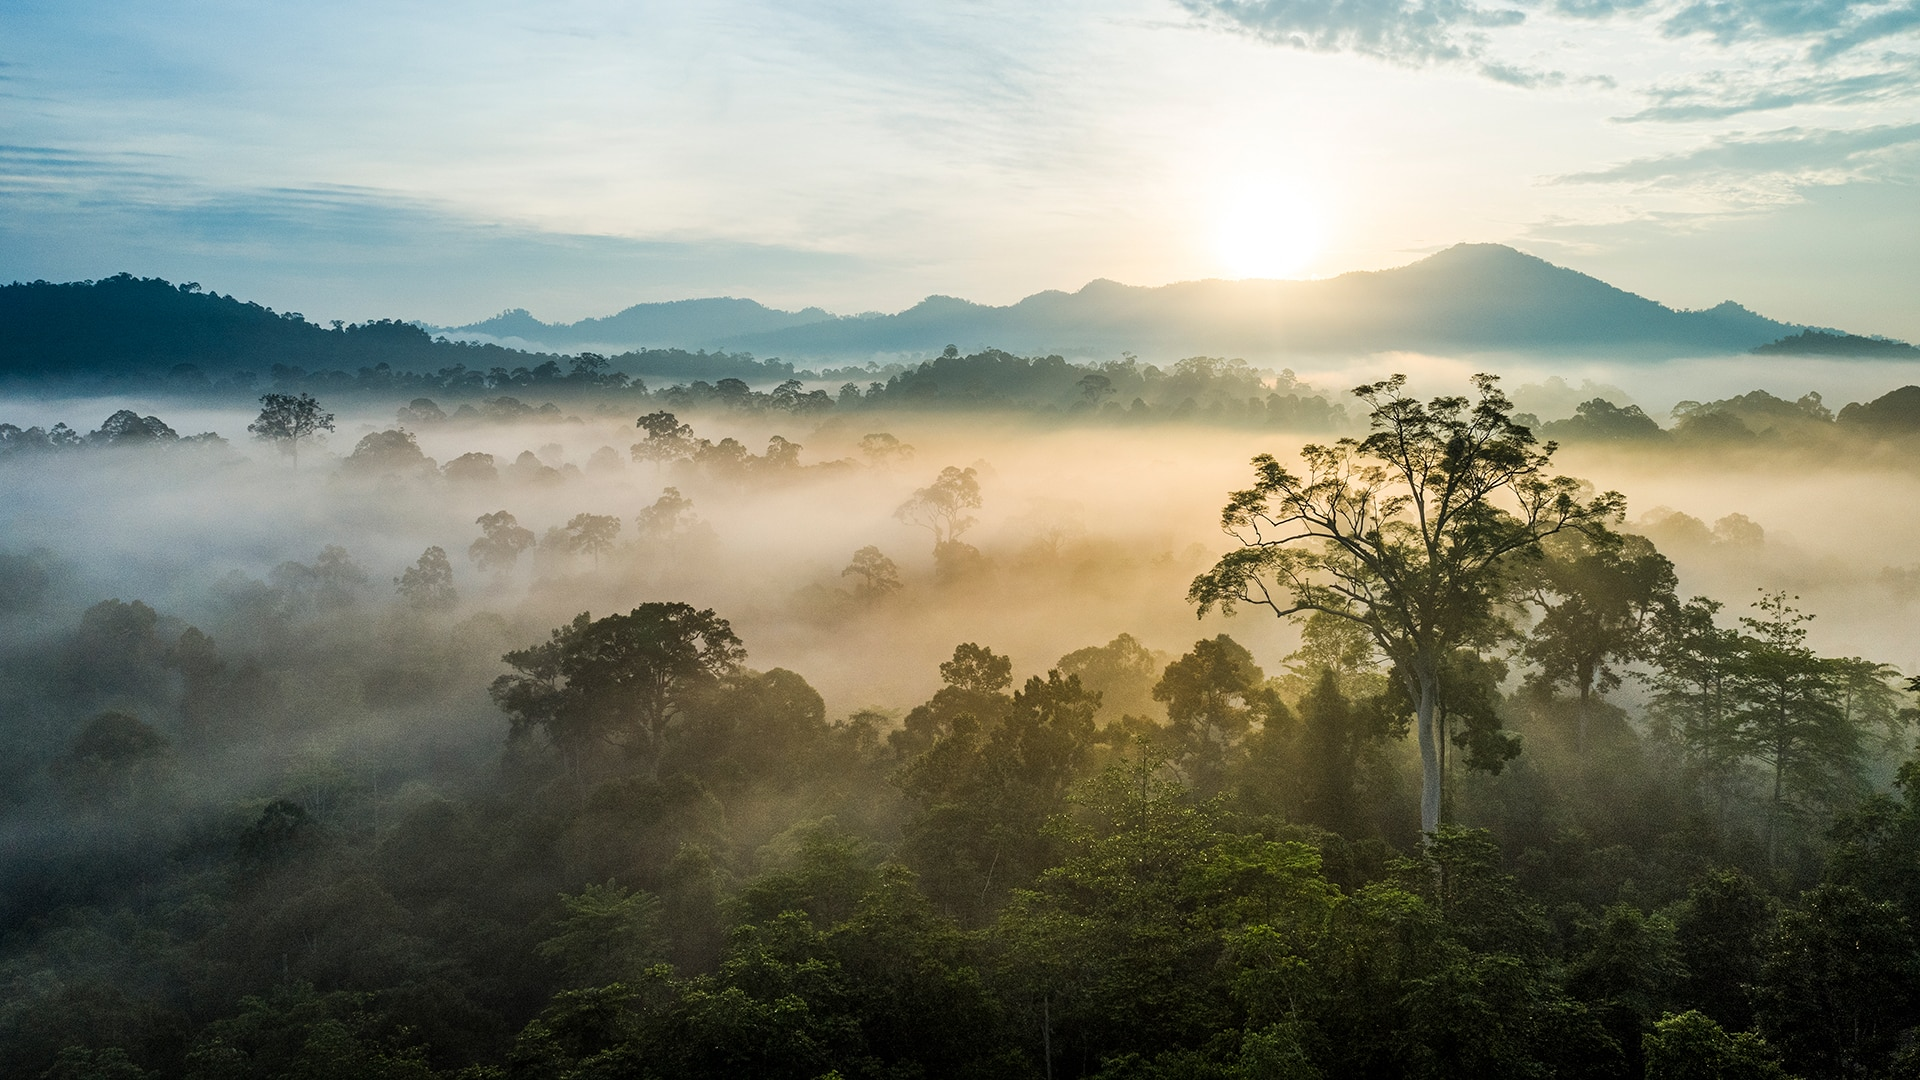 Borneo landscape with sun breaking through mountains and trees